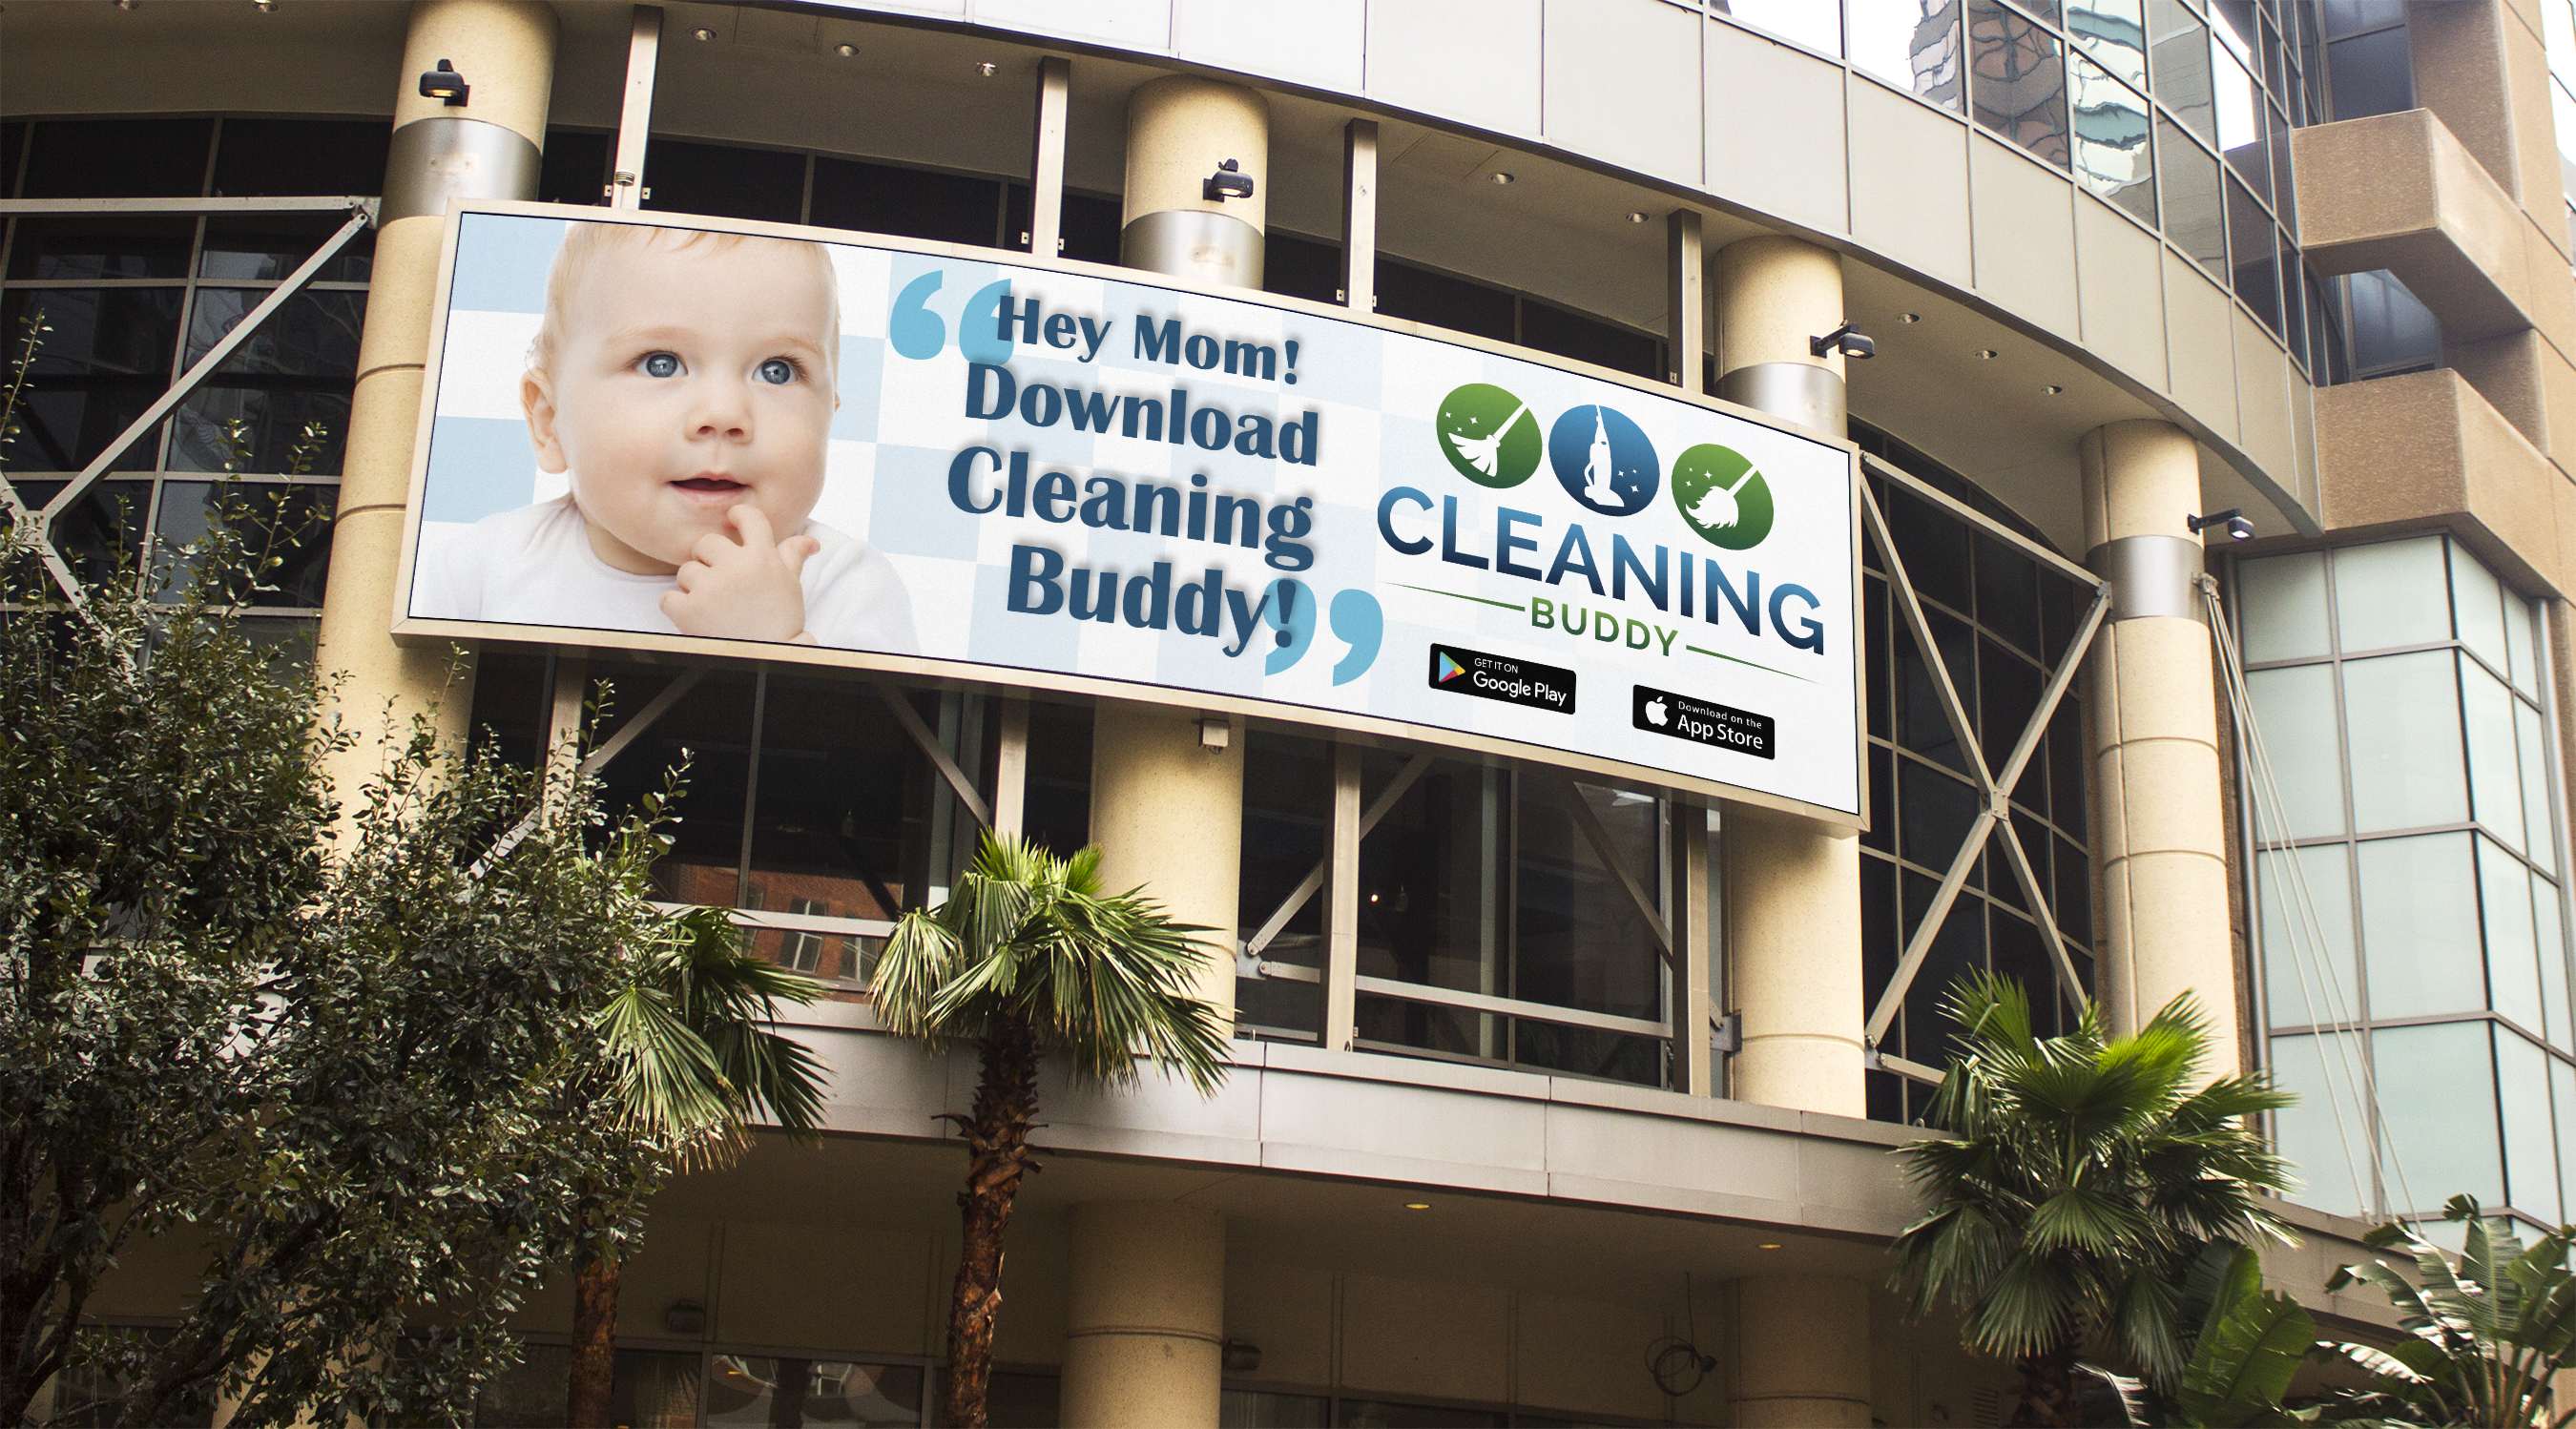 Cleaning Buddy Billboard